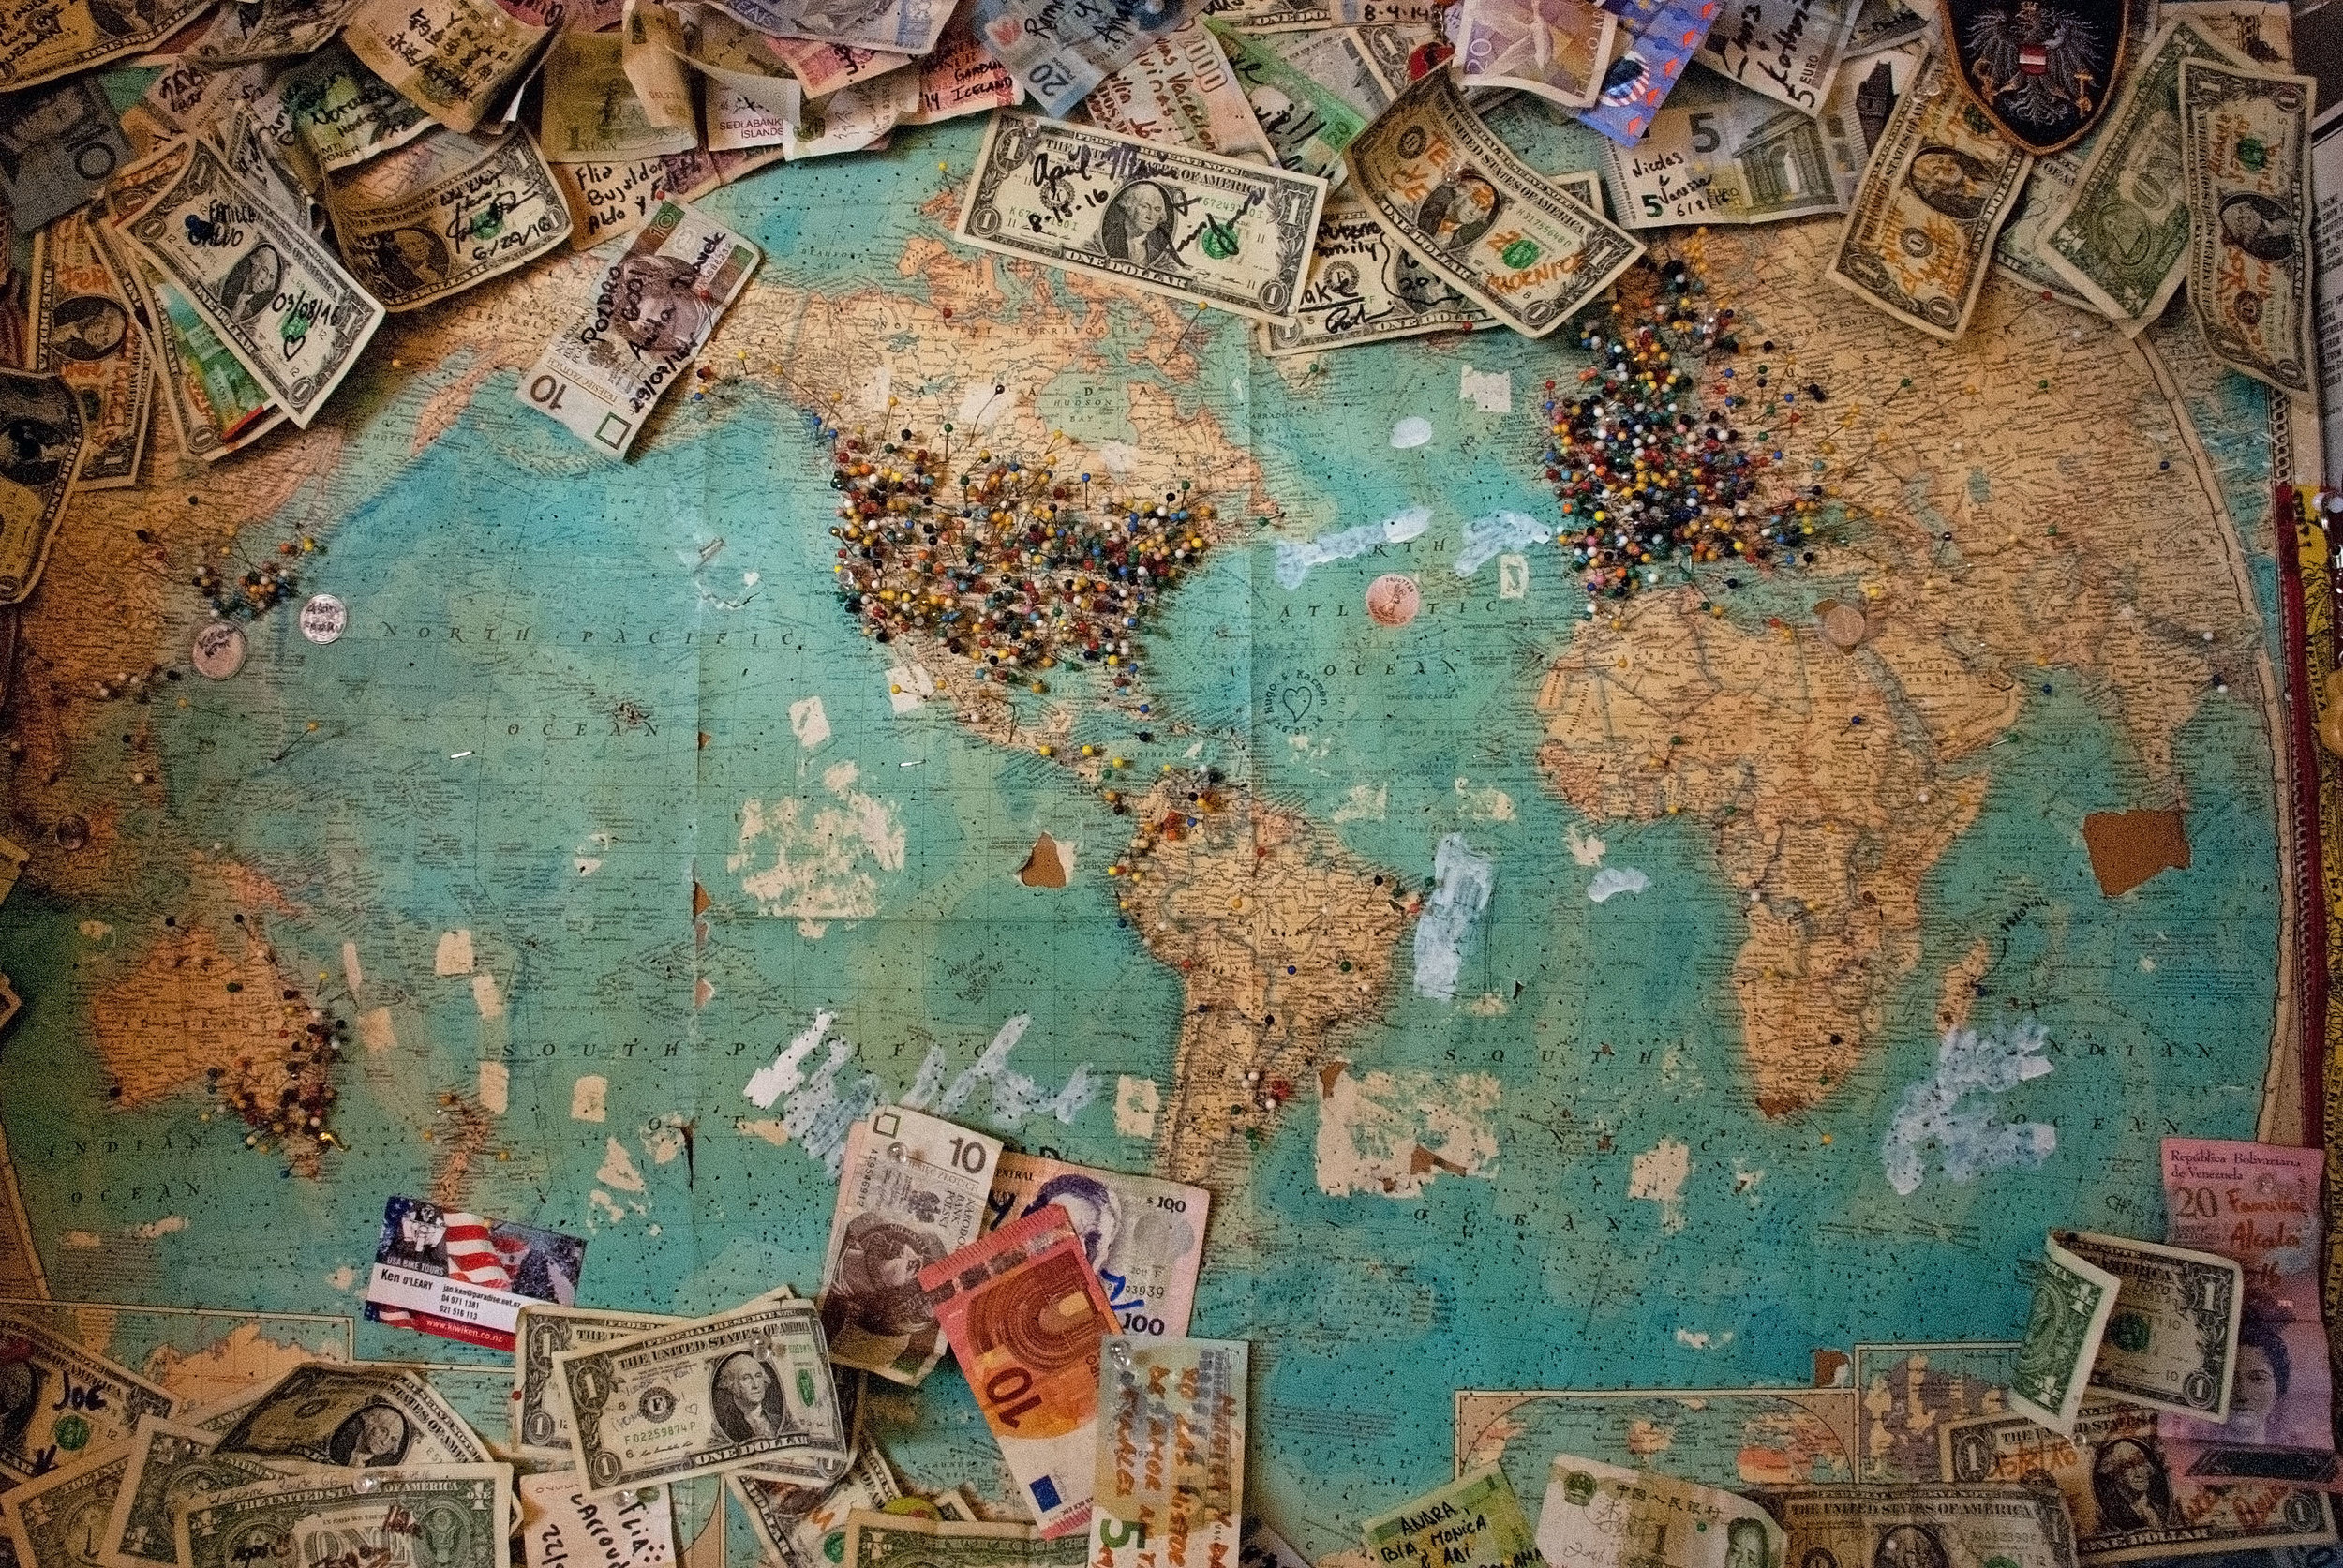 Missions - From helping to provide water filters for clean water in Africa, to orphanages, to helping end human trafficking, to feeding starving children and building schools overseas, we believe that we can make a difference in our world with both our time and money. It is our calling to share the love of Jesus with the entire world not just Southern NH. This is why we partner with missionaries and organizations all over the world to help people where they have needs. We set aside one month every year to talk about these needs, how we can meet them, and hear from people on the front line helping.